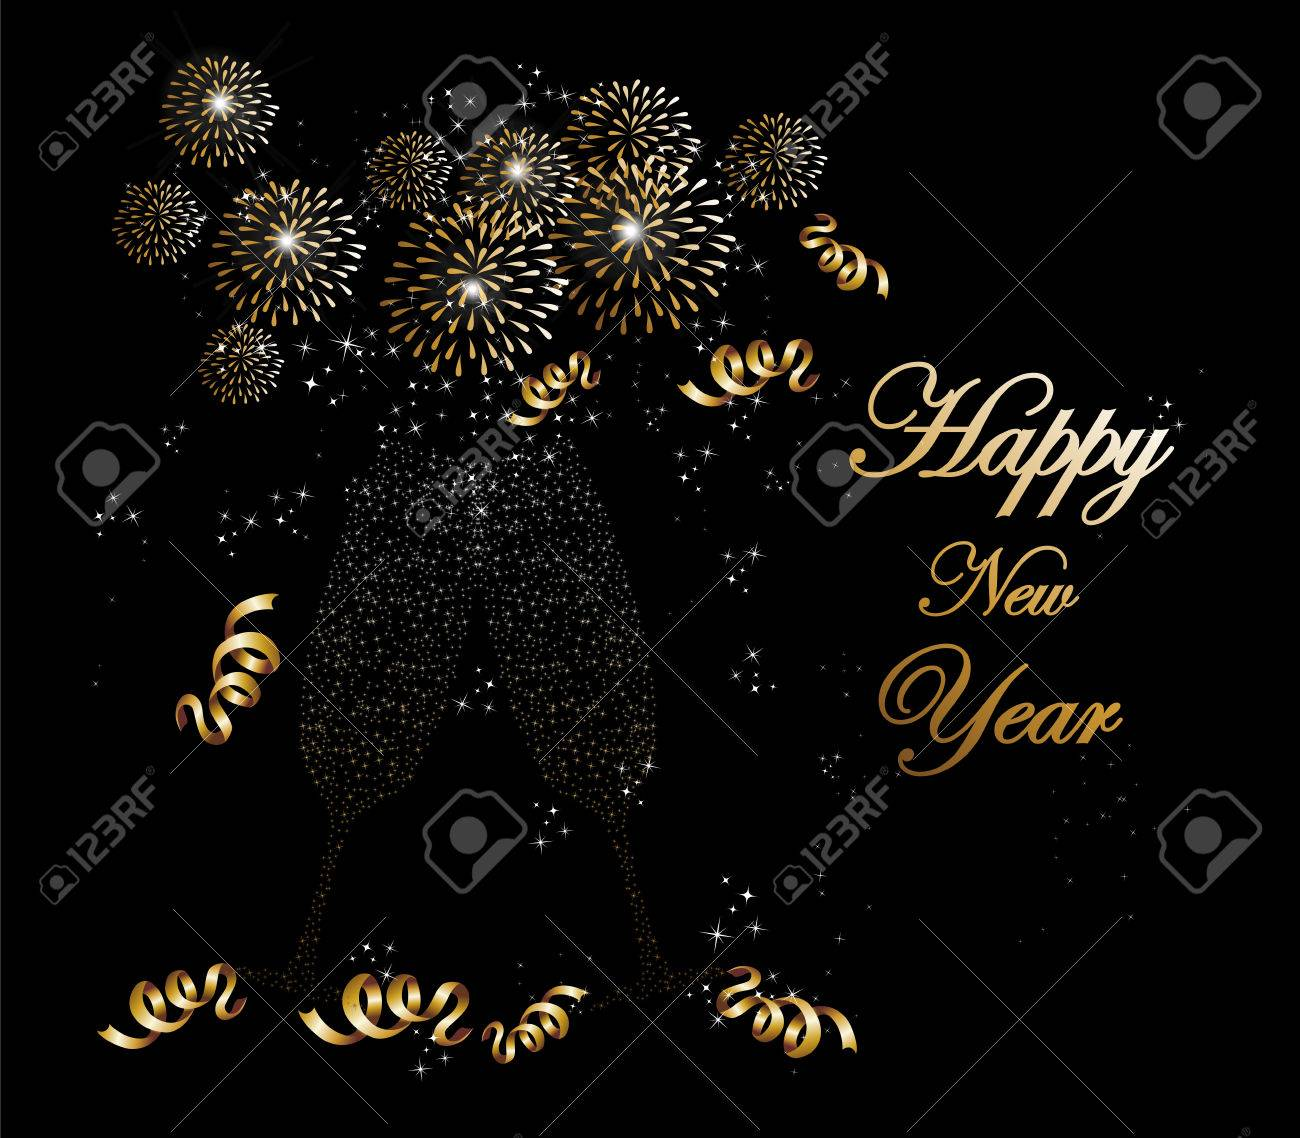 Happy new year 2014 holidays fireworks and flute glass greeting happy new year 2014 holidays fireworks and flute glass greeting card background stock vector m4hsunfo